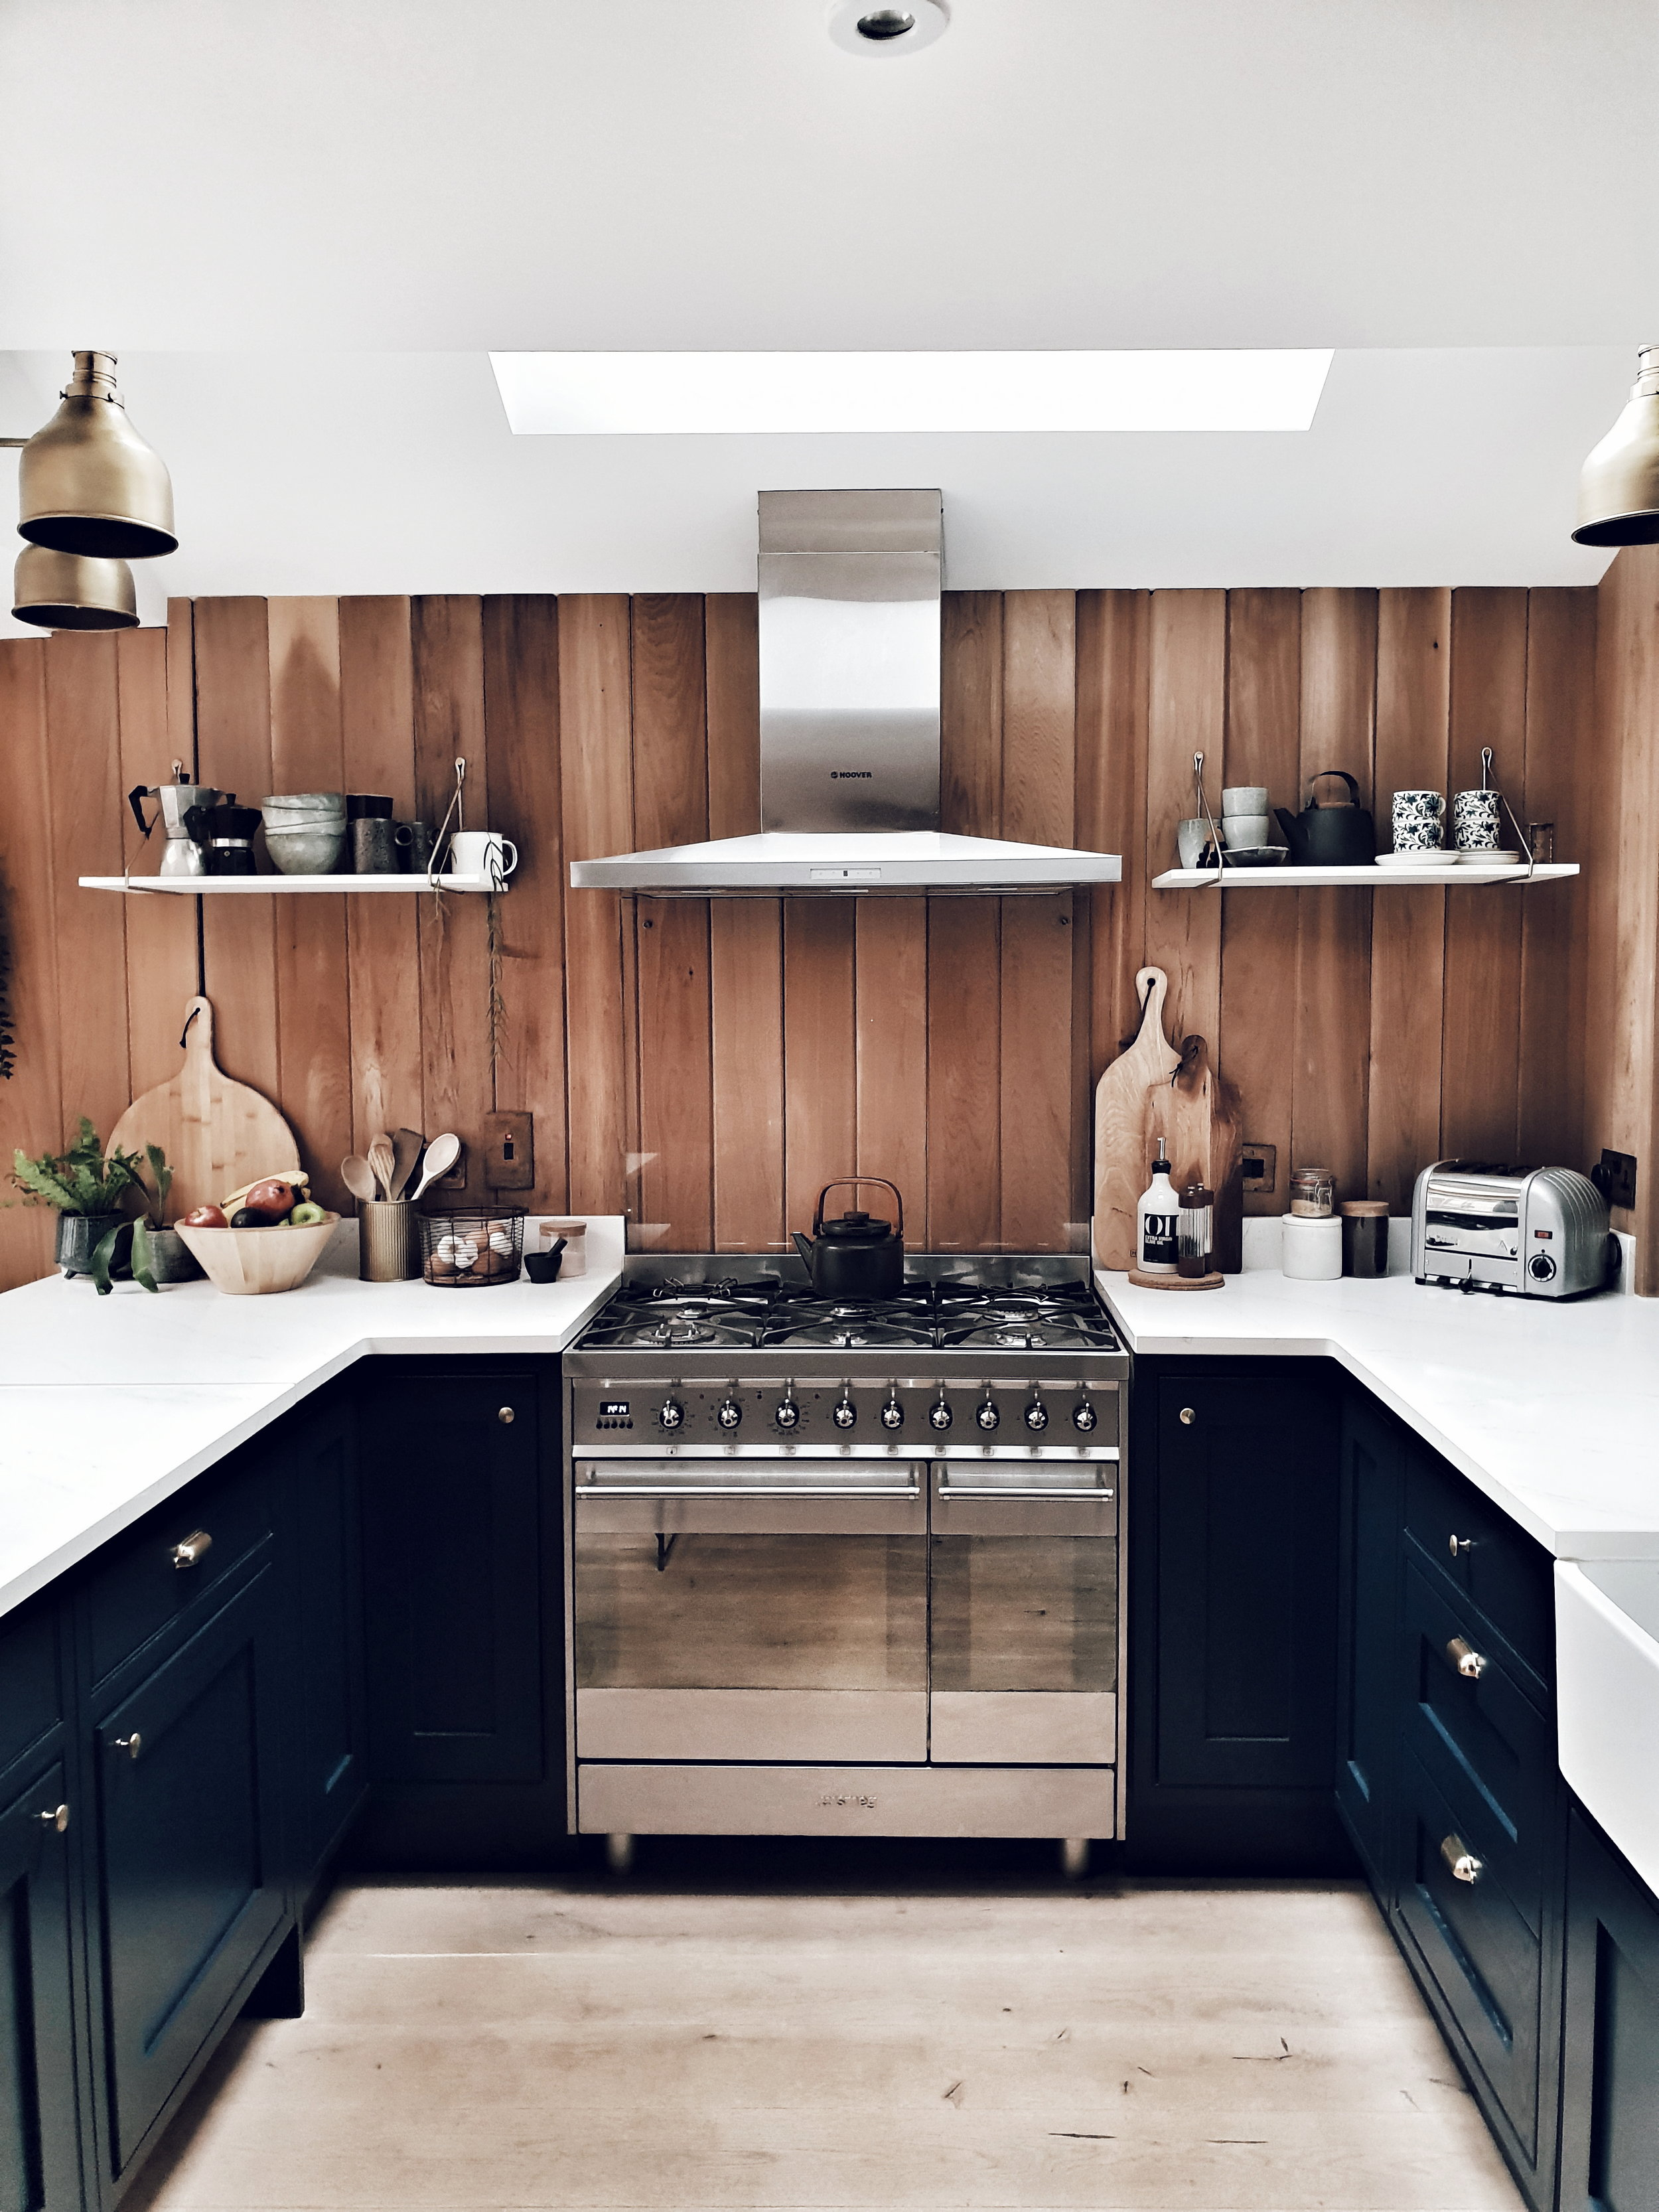 The kitchen that made me click follow on Maz's Instagram account  @the_ wooden _hill  with its stunning navy cabinets, brass handles and timber clad walls